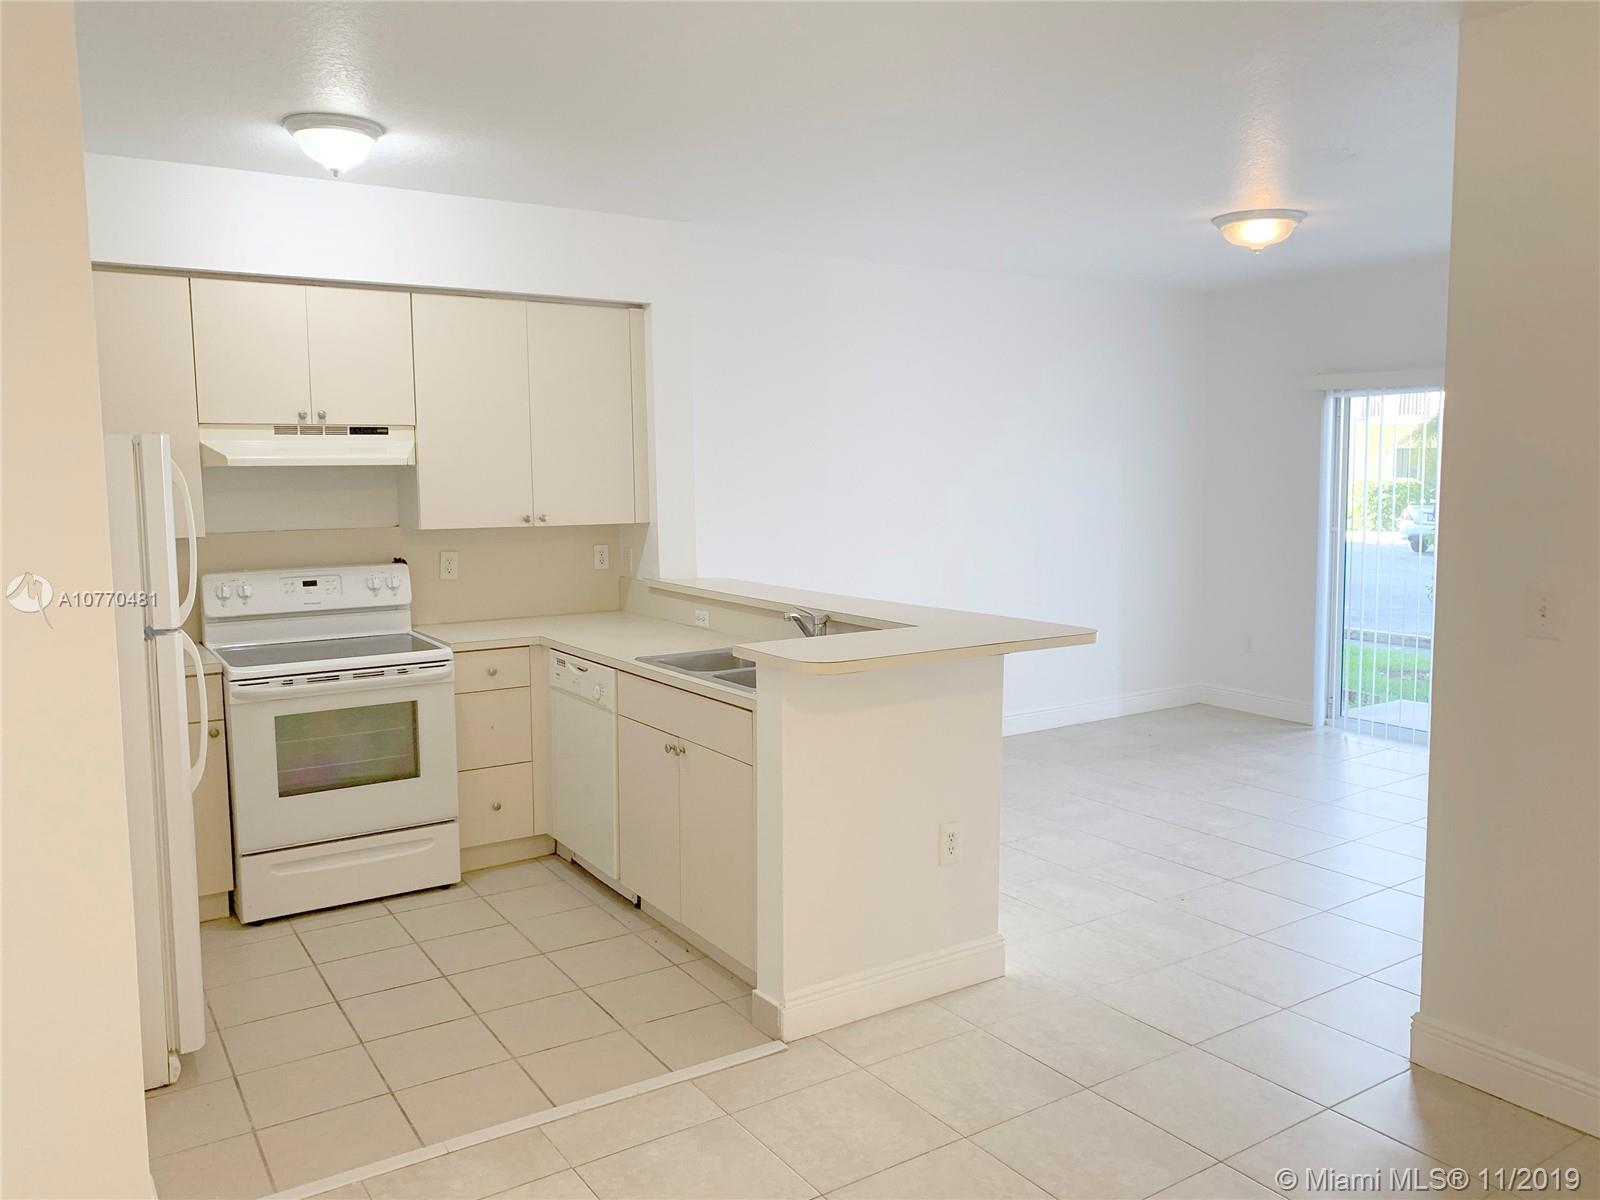 11060 SW 196 St #105 For Sale A10770481, FL